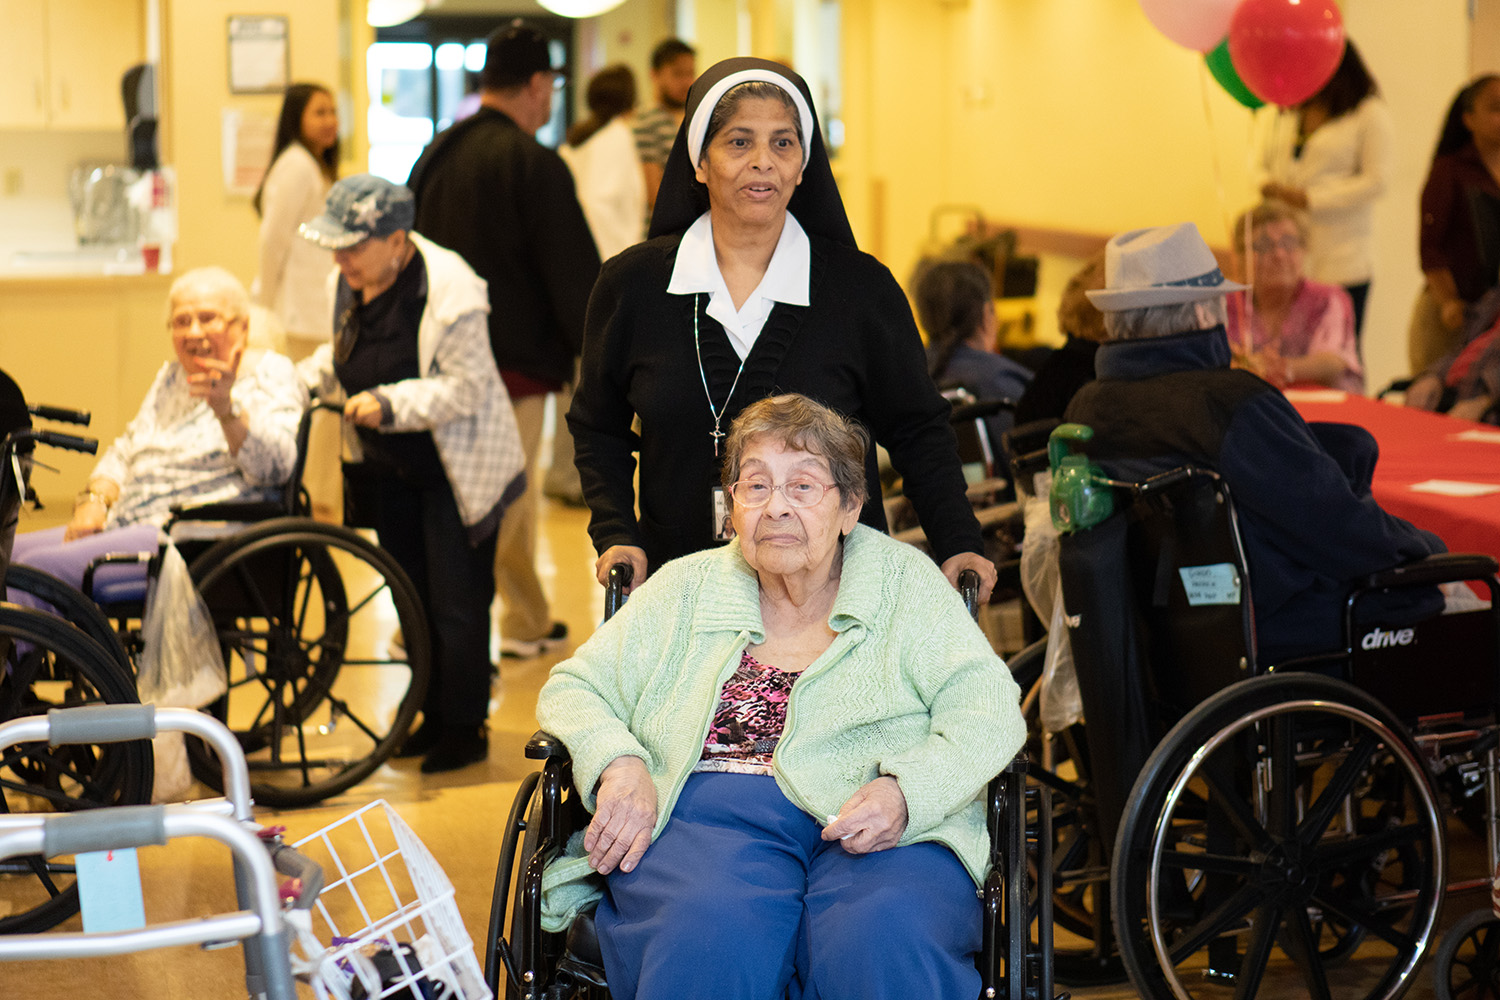 A nun escorting a female senior patient through a social gathering with other senior patients.